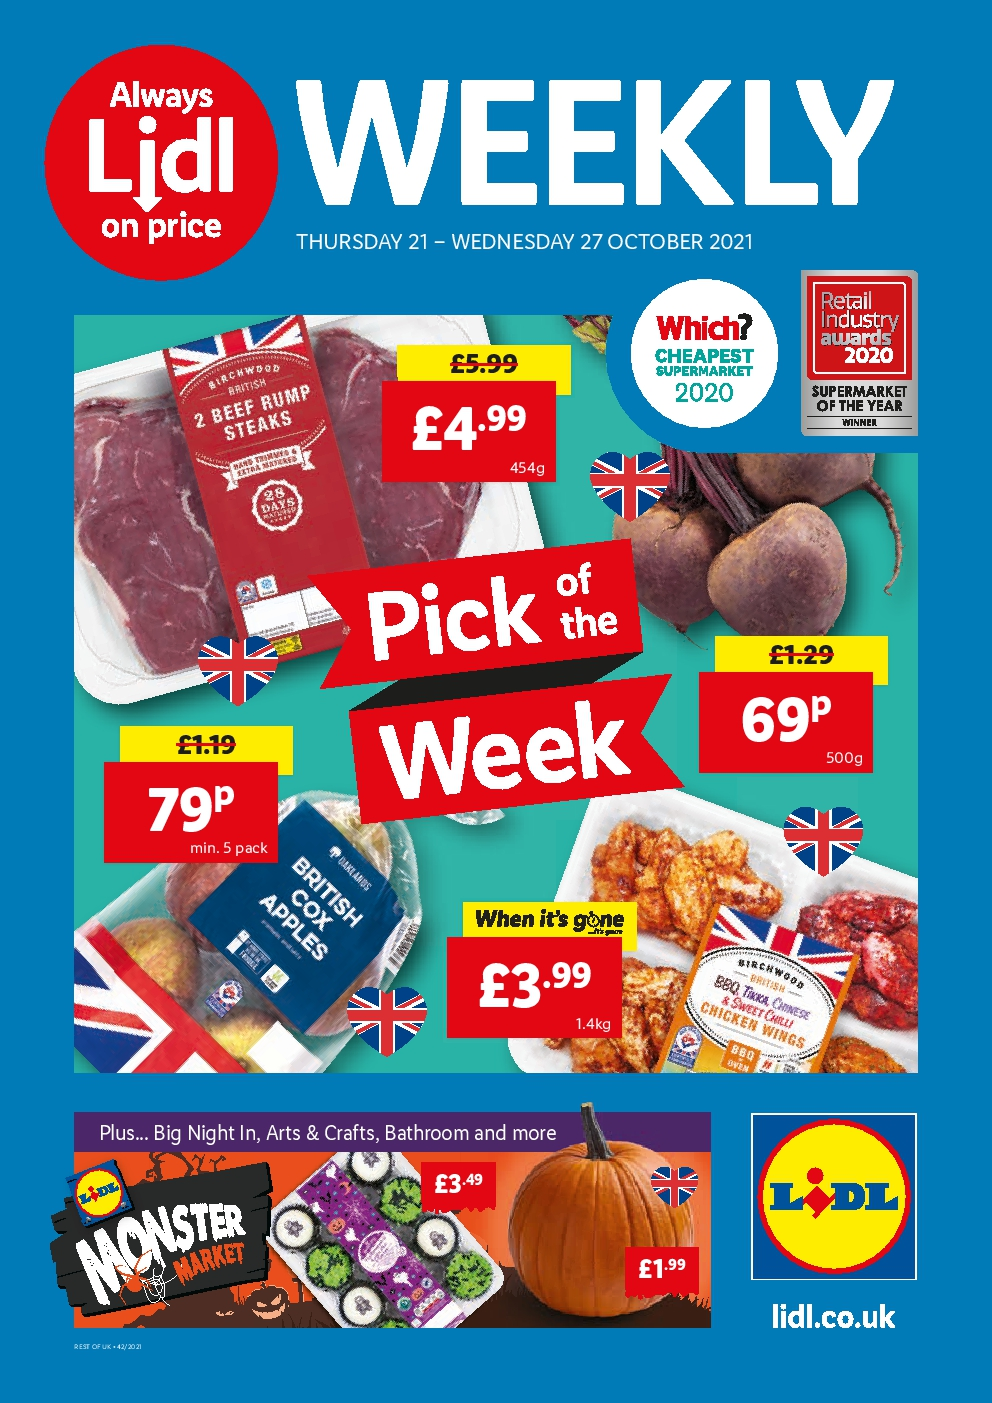 Lidl Weekly Offers 21st October - 27th October 2021